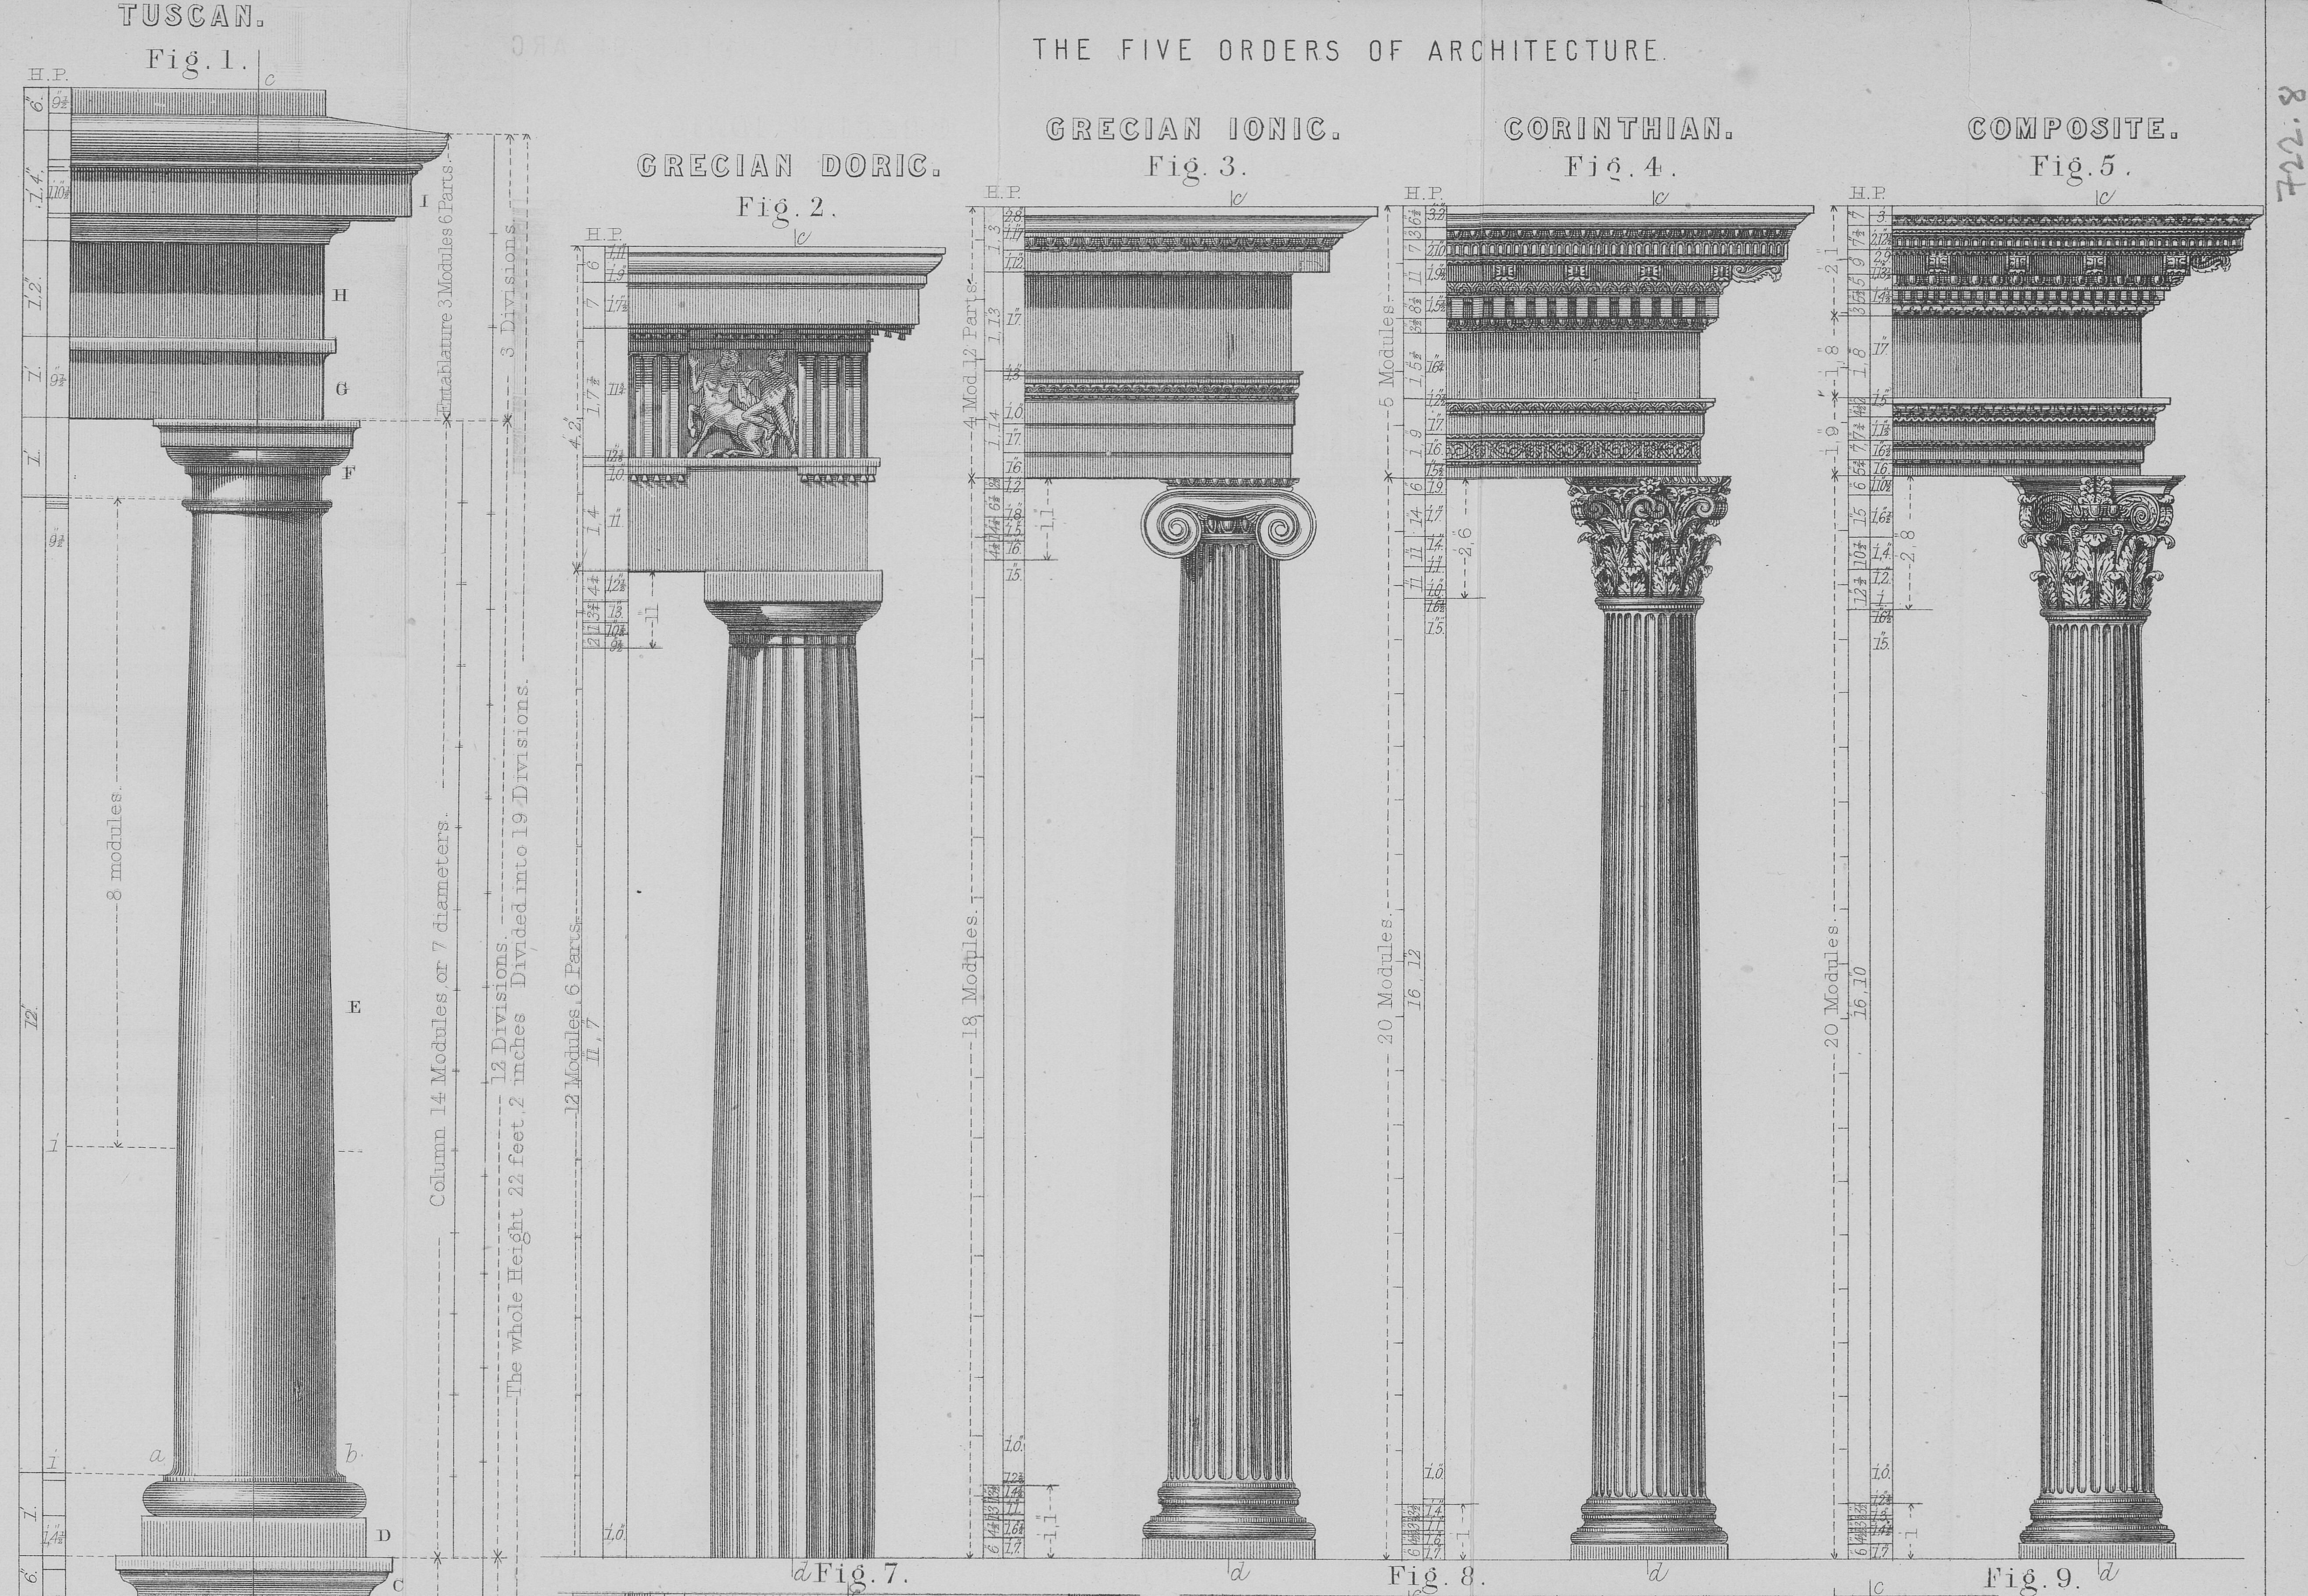 Architectural Columns And Pillars : Types of columns and architecture s classical order